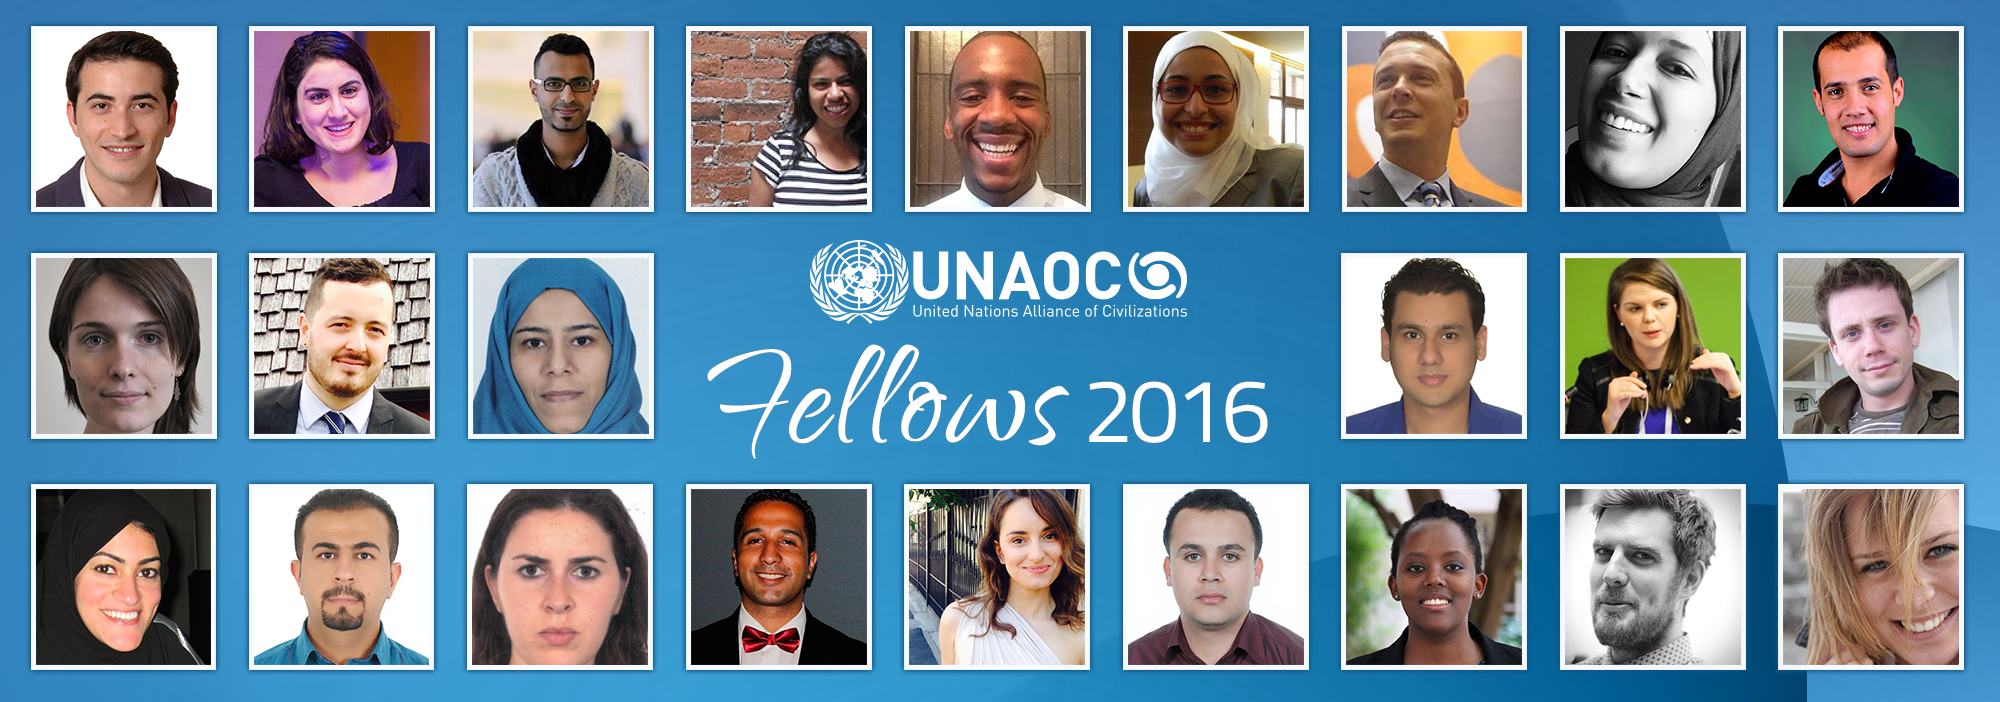 fellows2016-slider